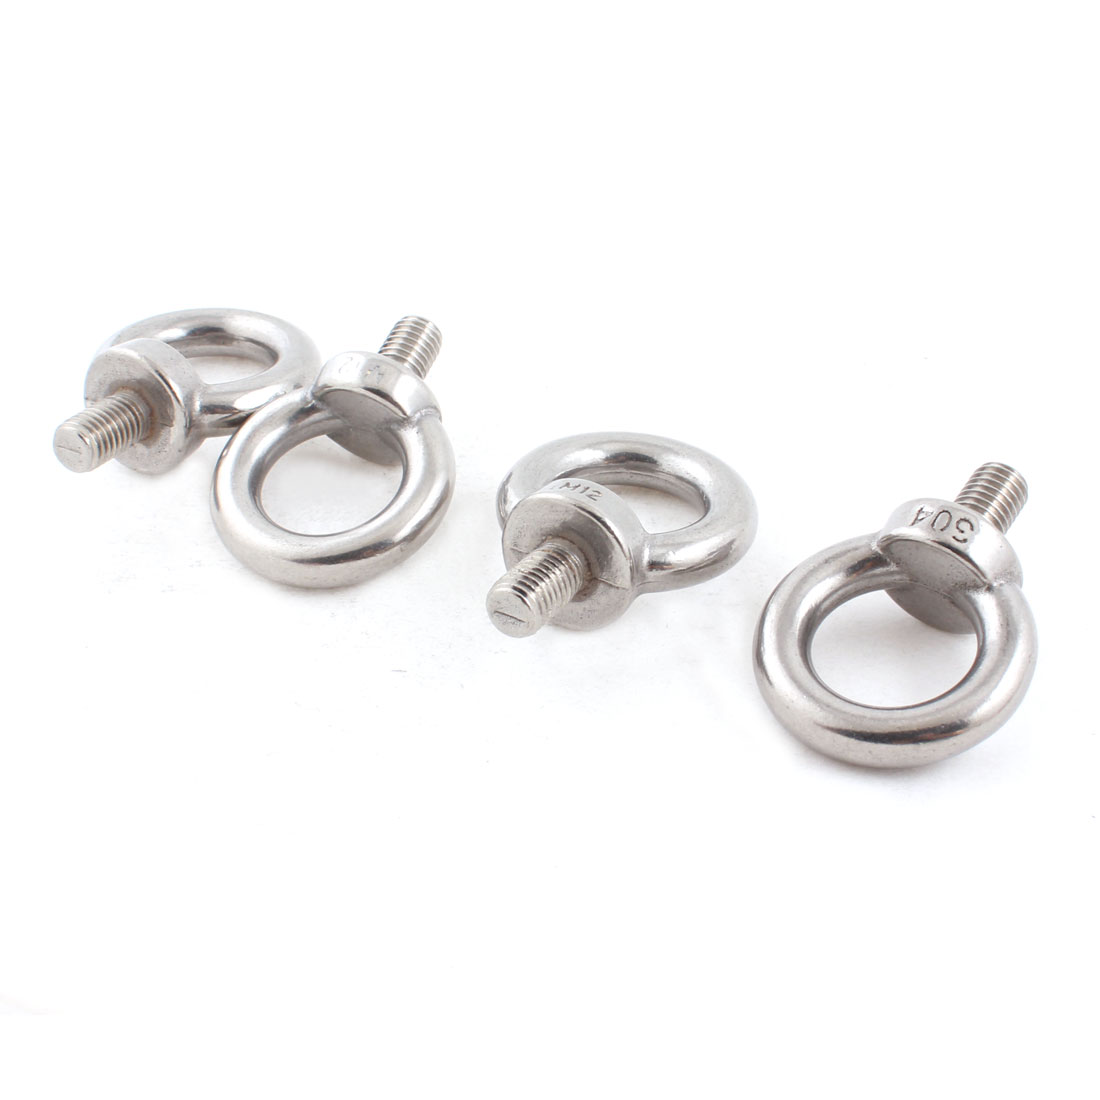 4 PCS Stainless Steel Wire Rope Eye Bolt Grips 12mm Thread